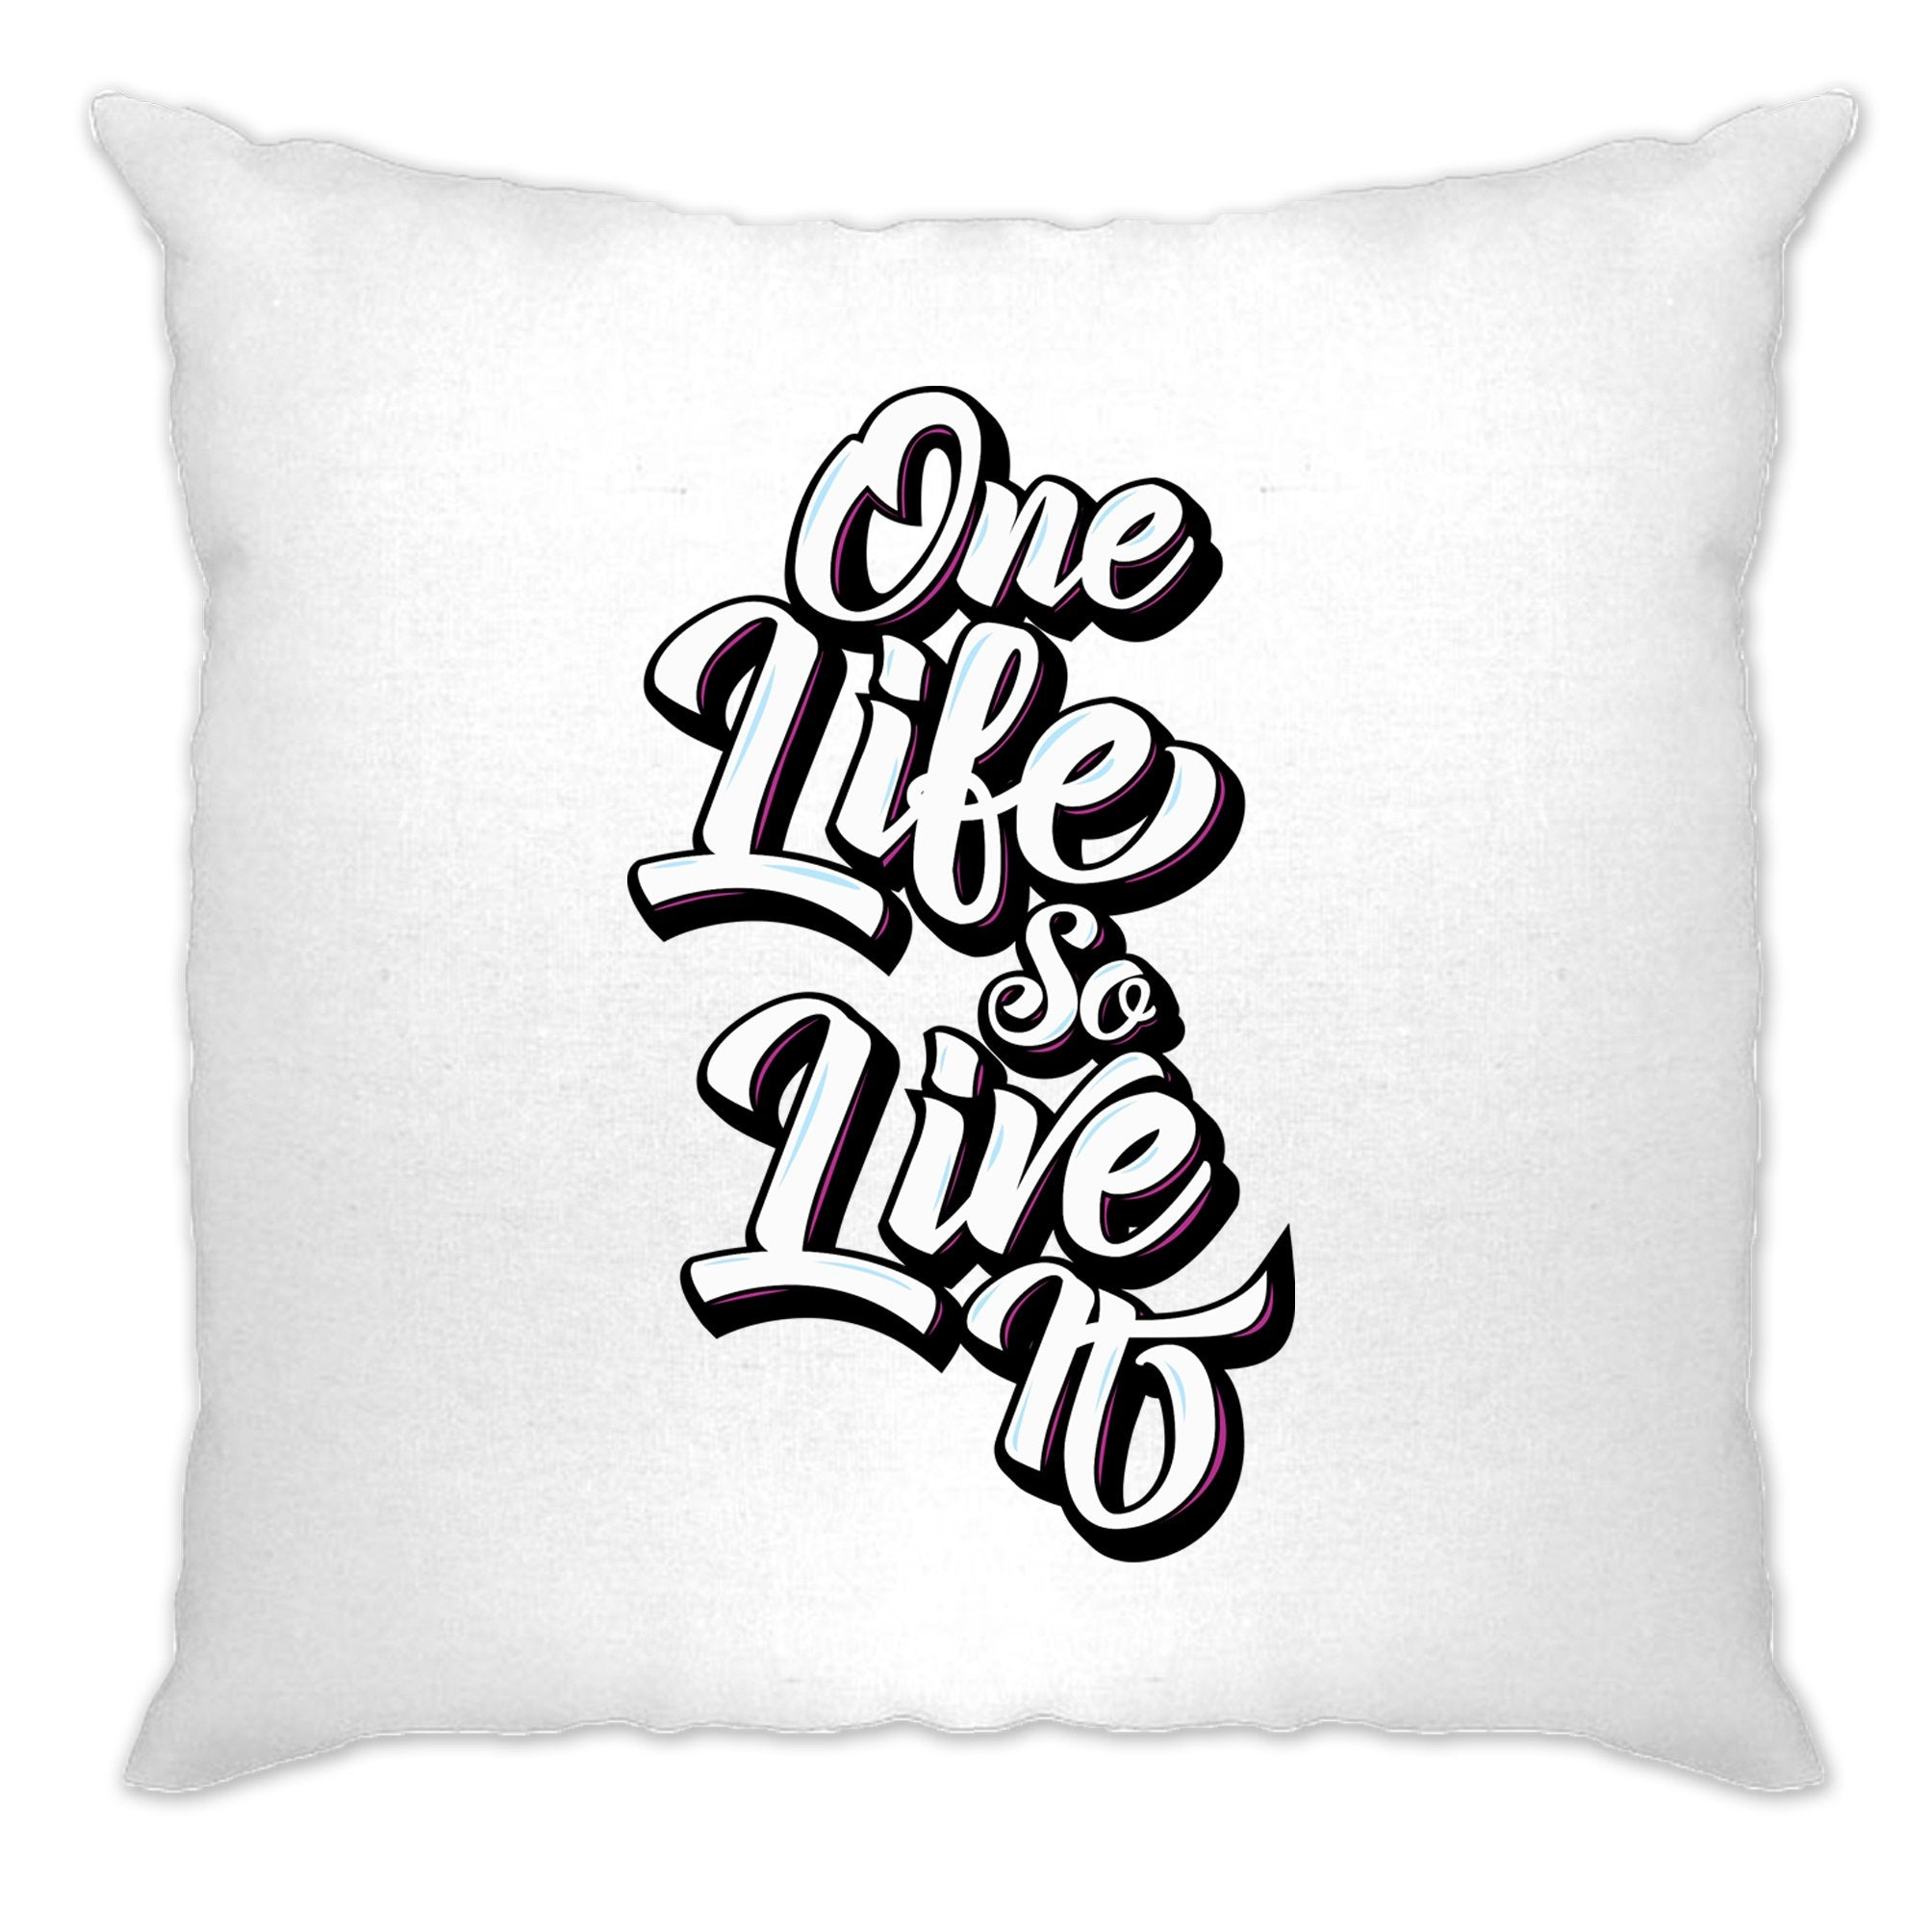 Inspirational Cushion Cover You Have One Life, So Live It